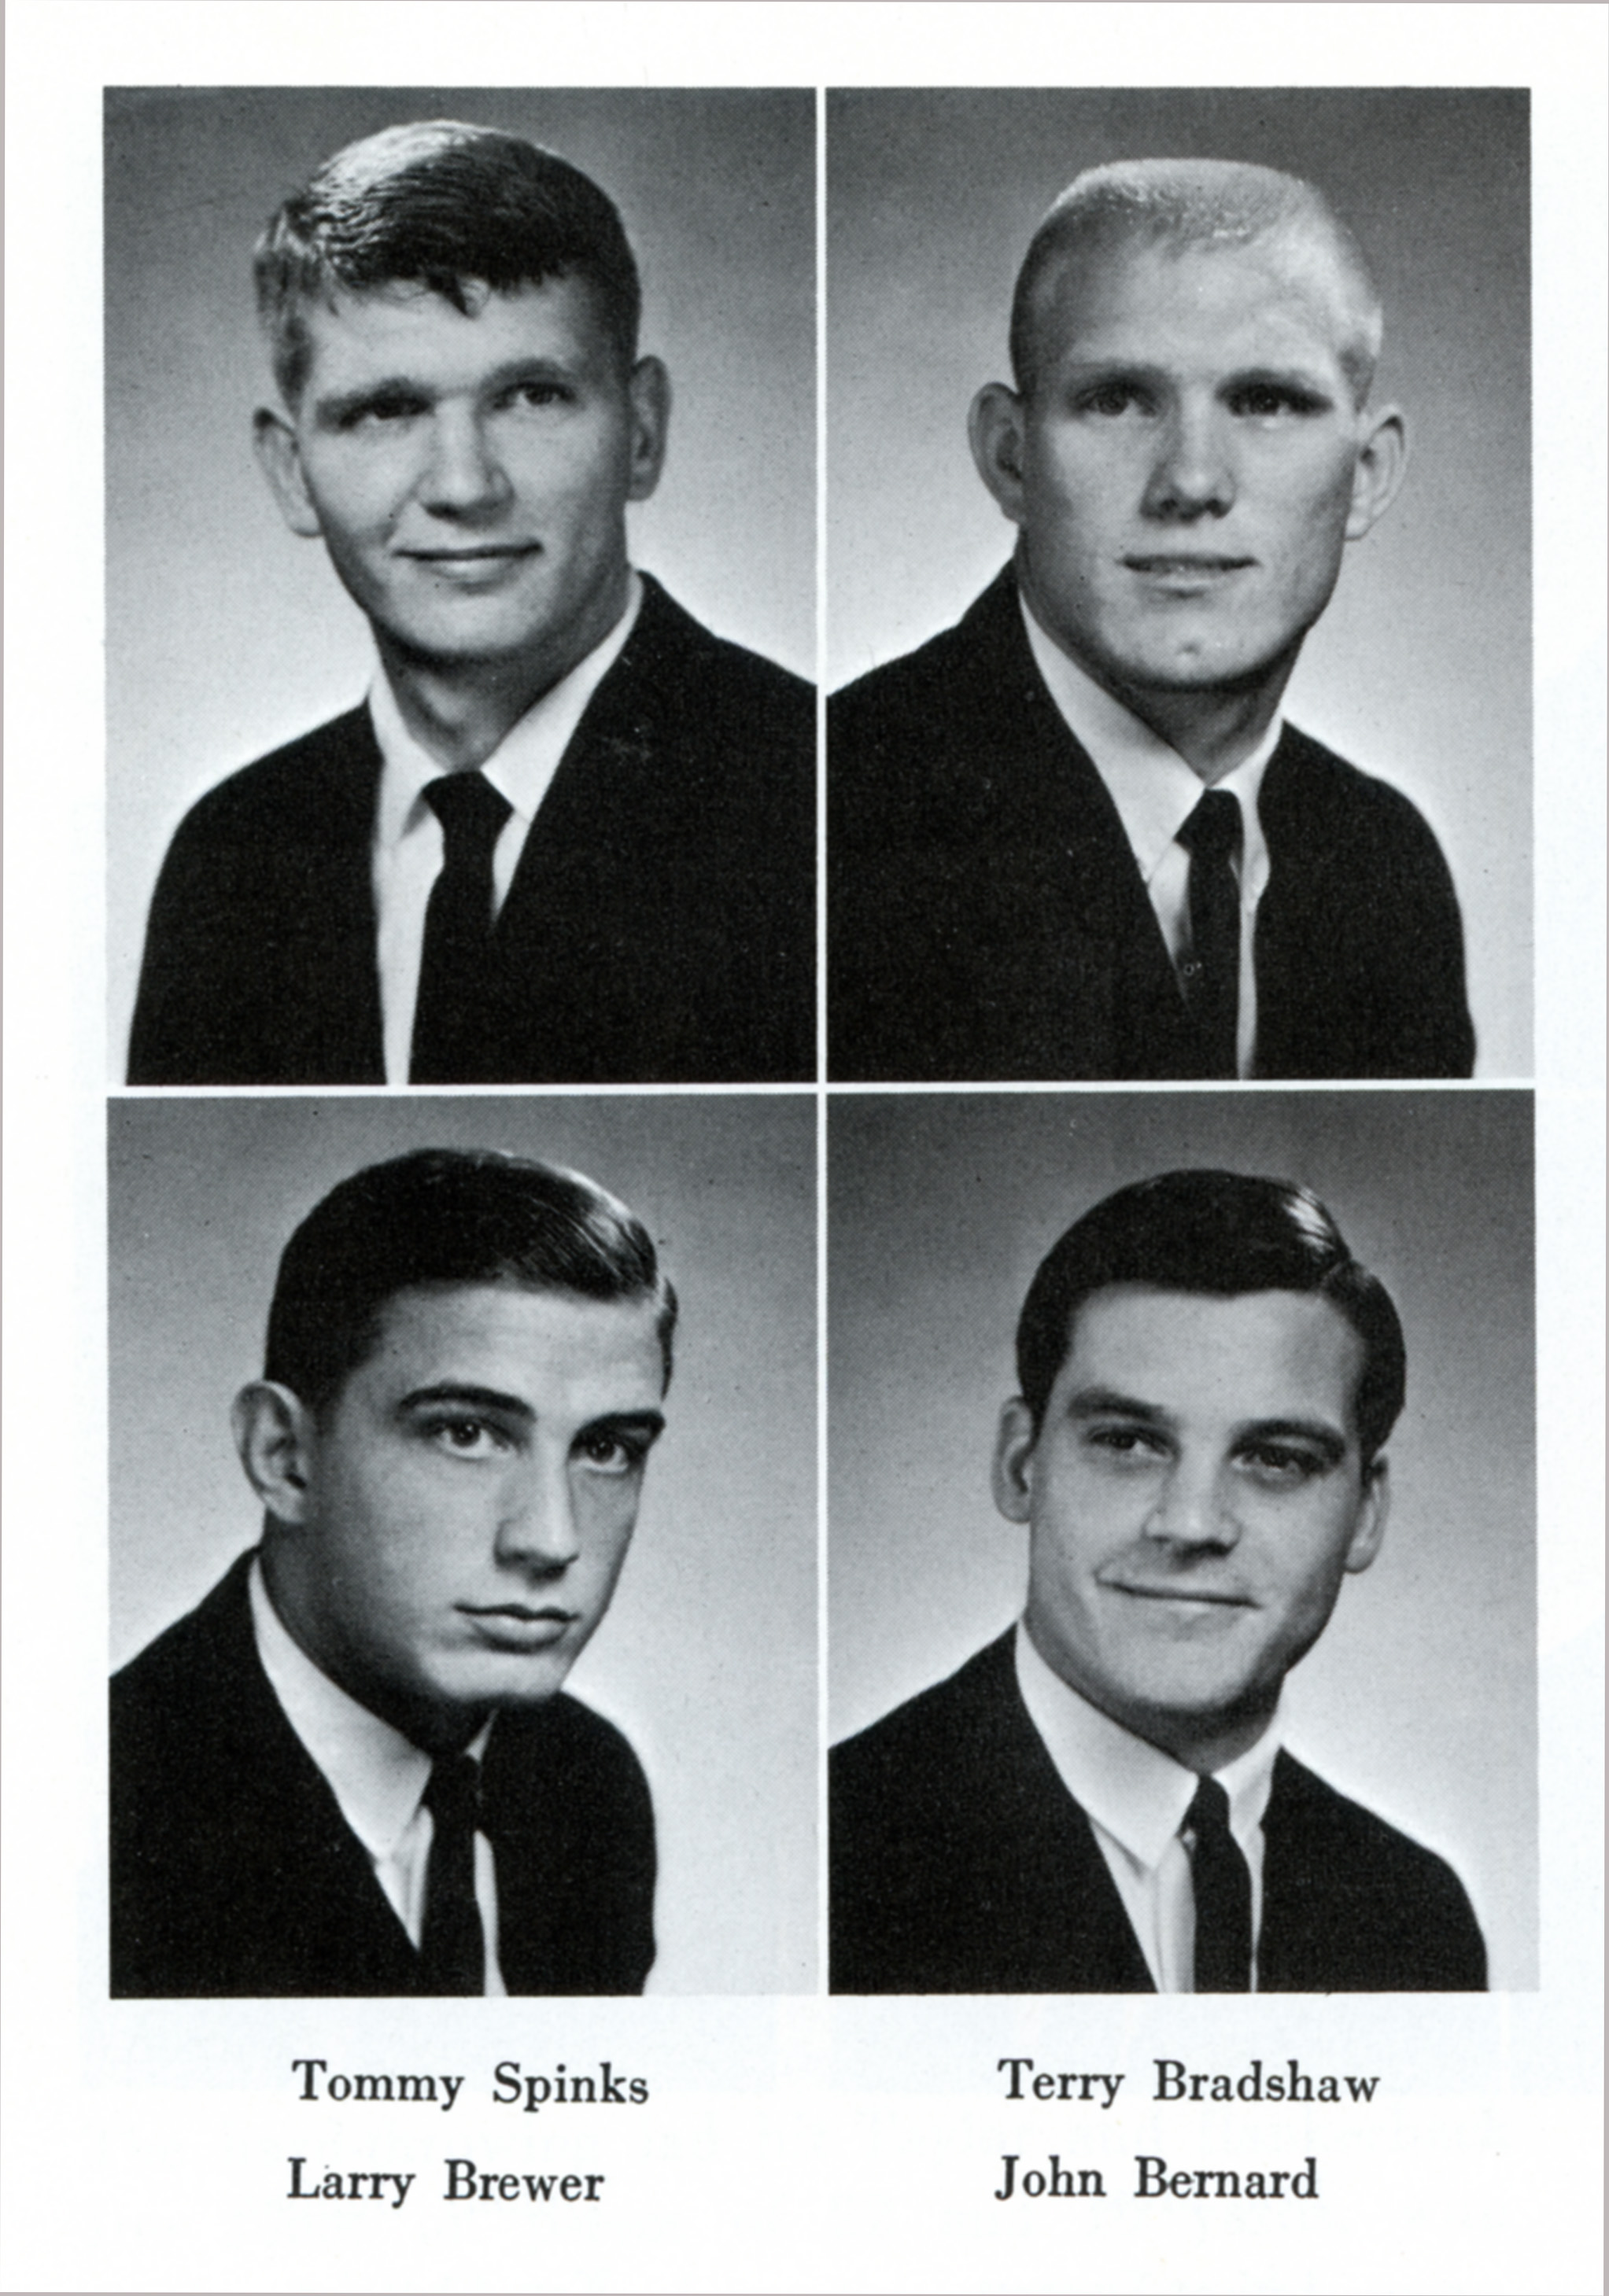 ... September 2013 Louisiana Tech 1967 Yearbook page 378.jpg ( file